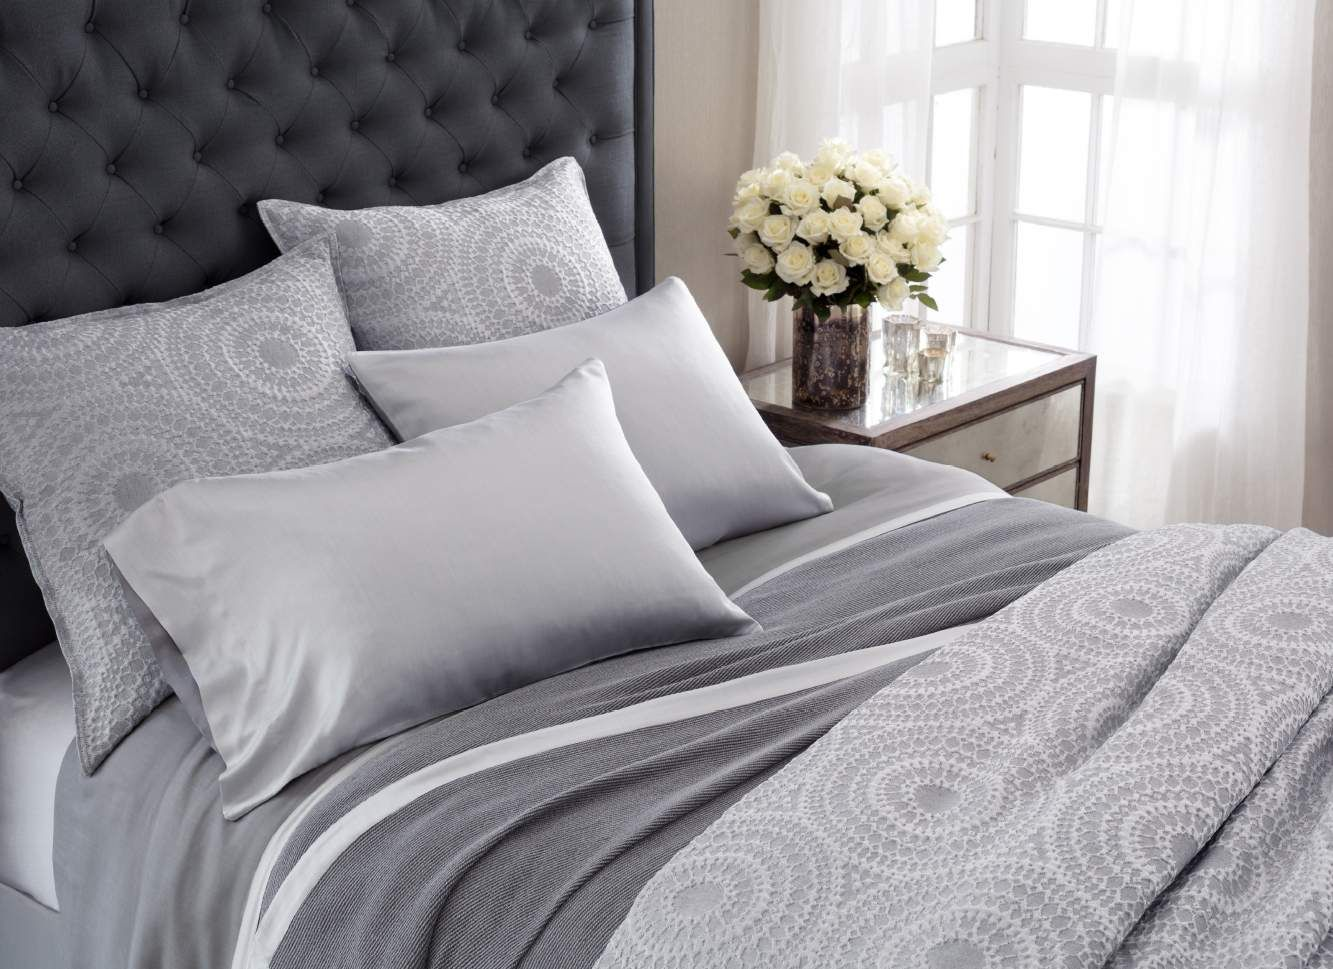 Annie Selke Luxe Chinois Bedding Luxury bedding, Bed